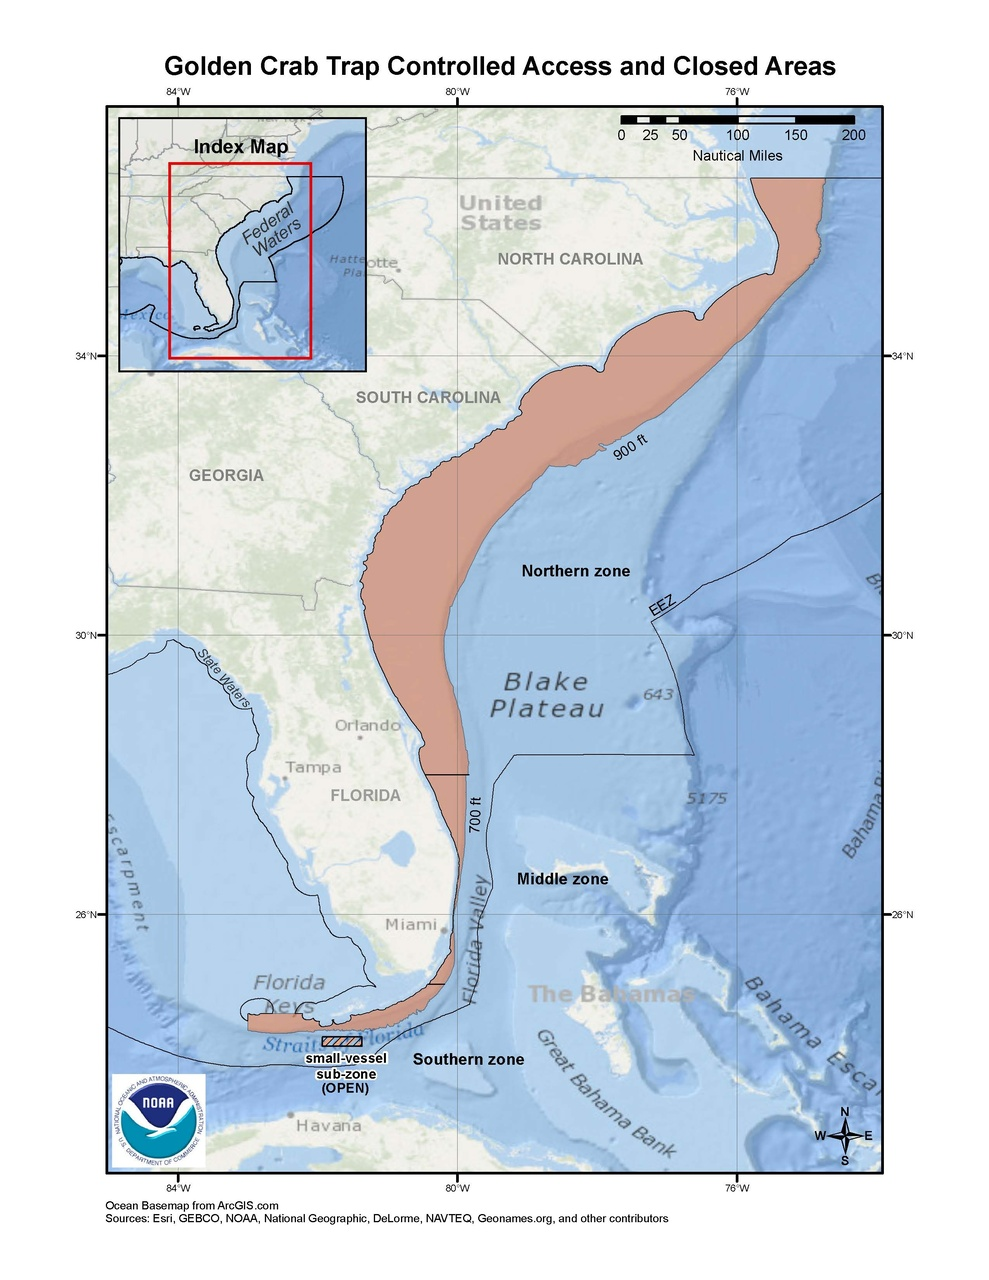 This is a map of golden crab trap fishing zones and closed areas in the South Atlantic Region.